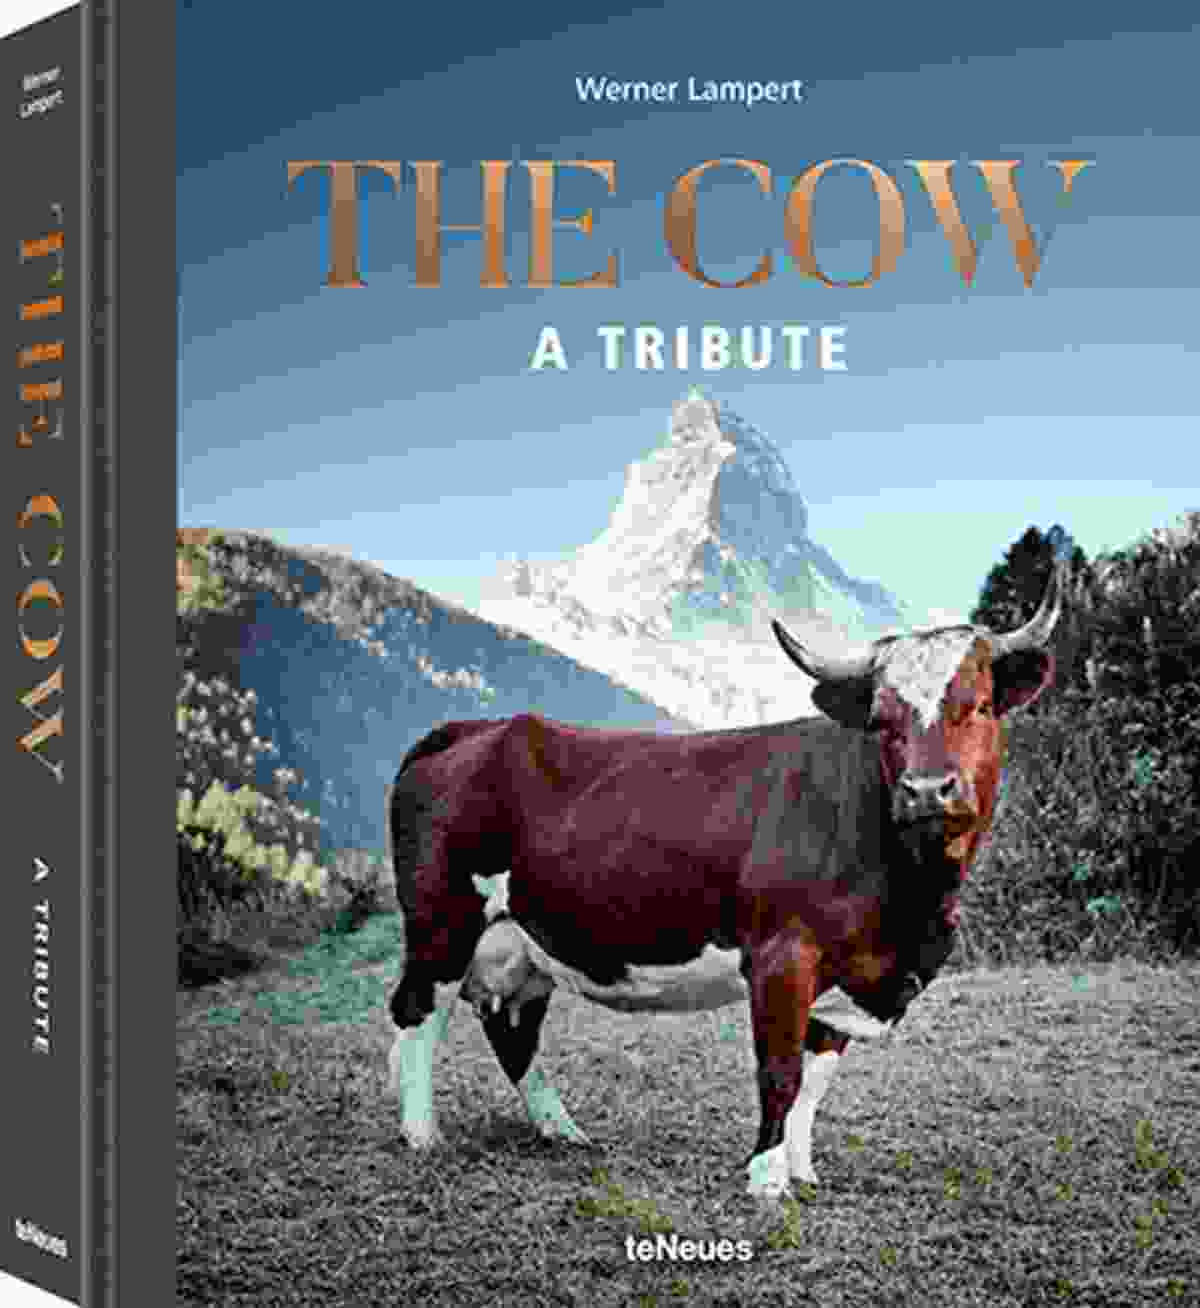 © The Cow - A Tribute by Werner Lampert, published by teNeues, www.teneues.com, Evolèner, Valais, Switzerland, © Werner Lampert GmbH, (Photo Ramona Waldner)